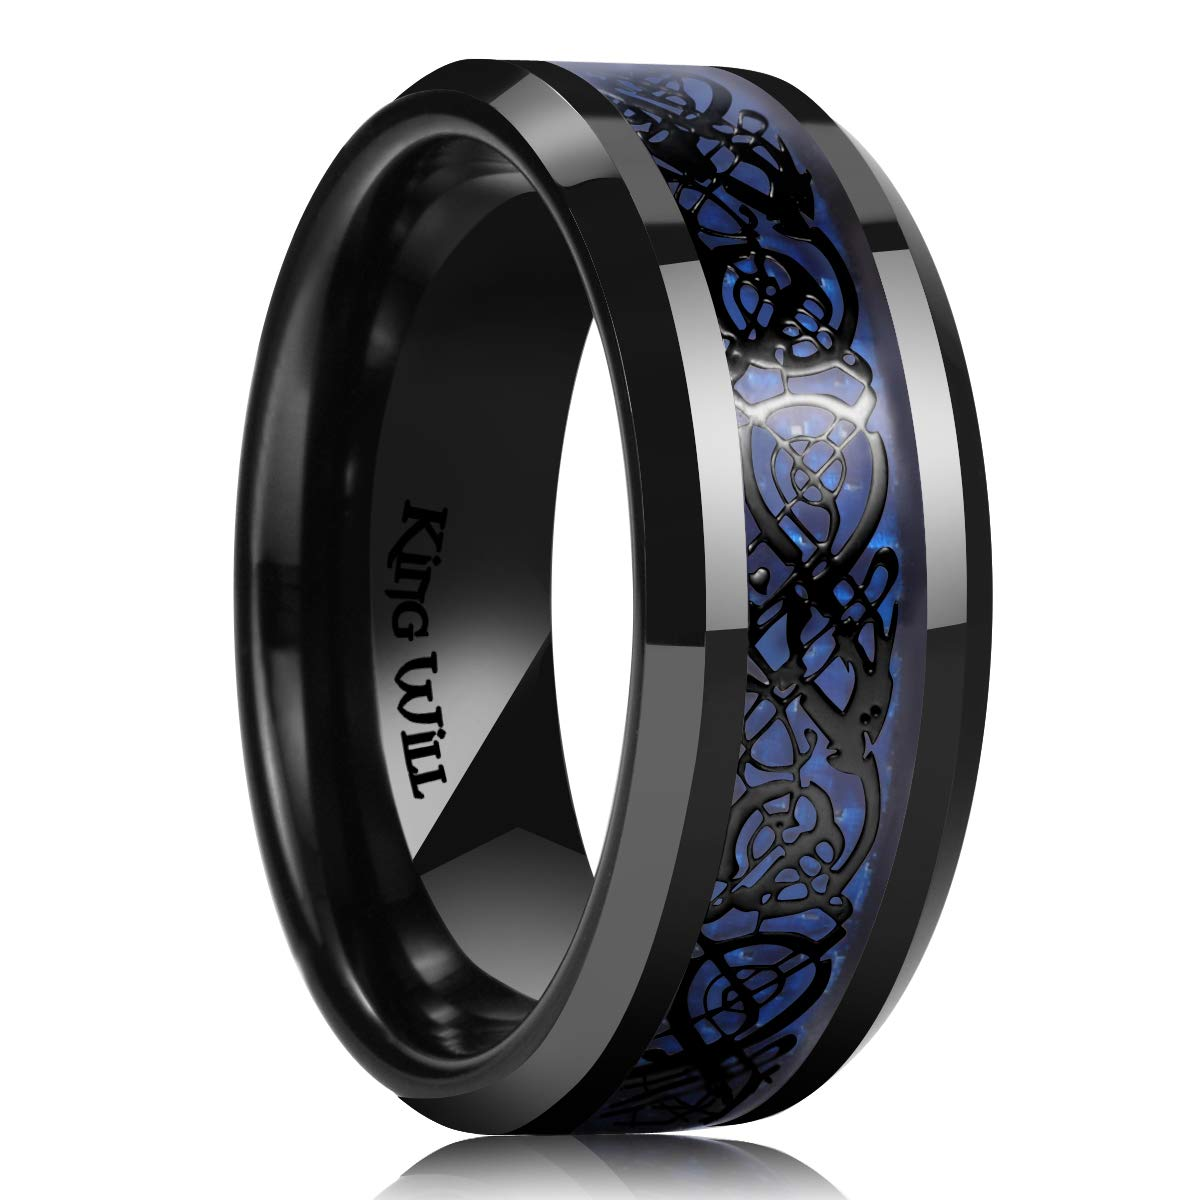 King Will Dragon 9mm Stainless Steel Ring Blue Carbon Fibre & Sliver Celtic Dragon Inlaid with Polished Beveled Edge&Black Plated(9) by King Will